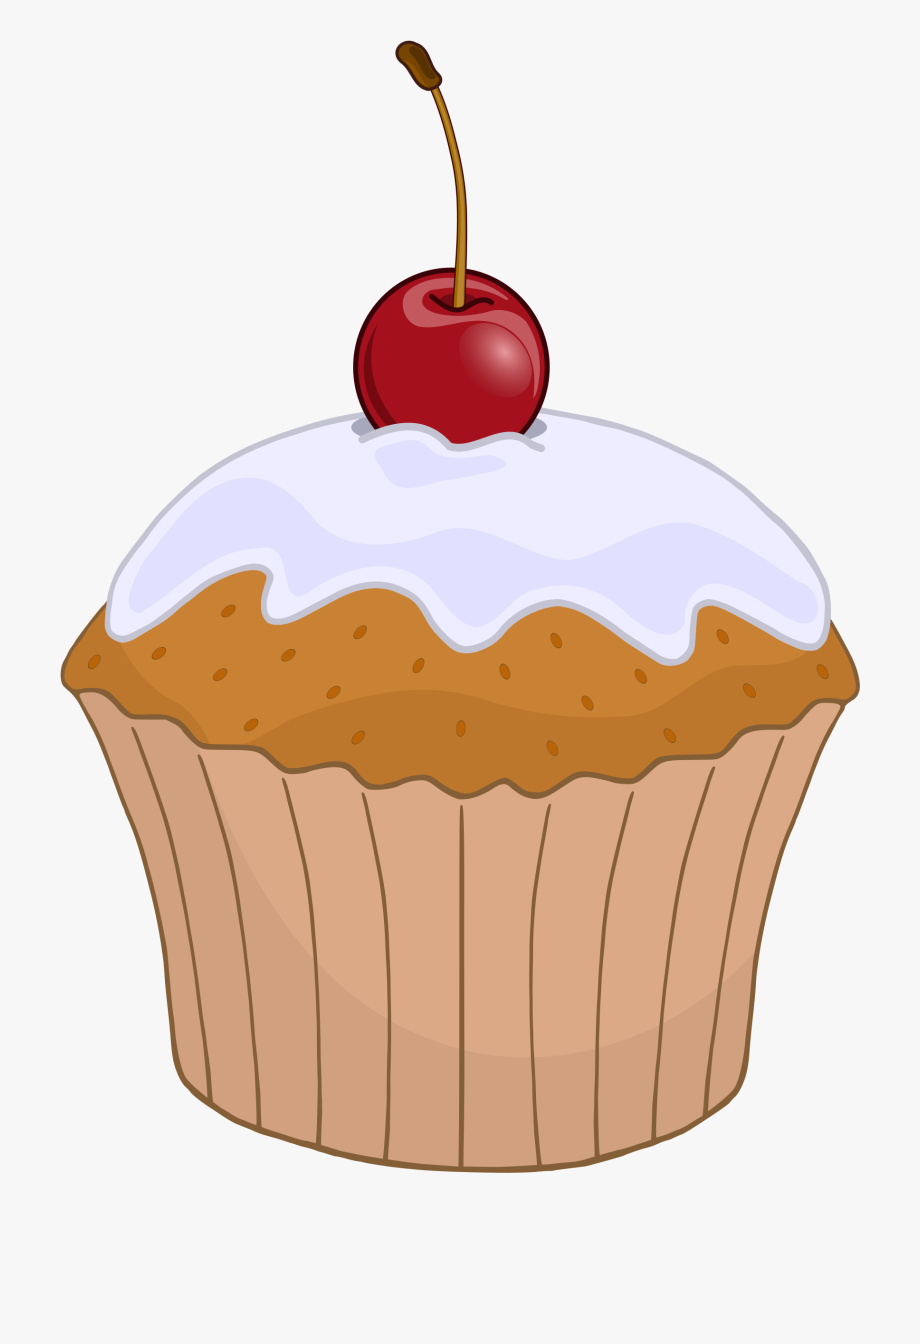 Muffins Clipart Animated.